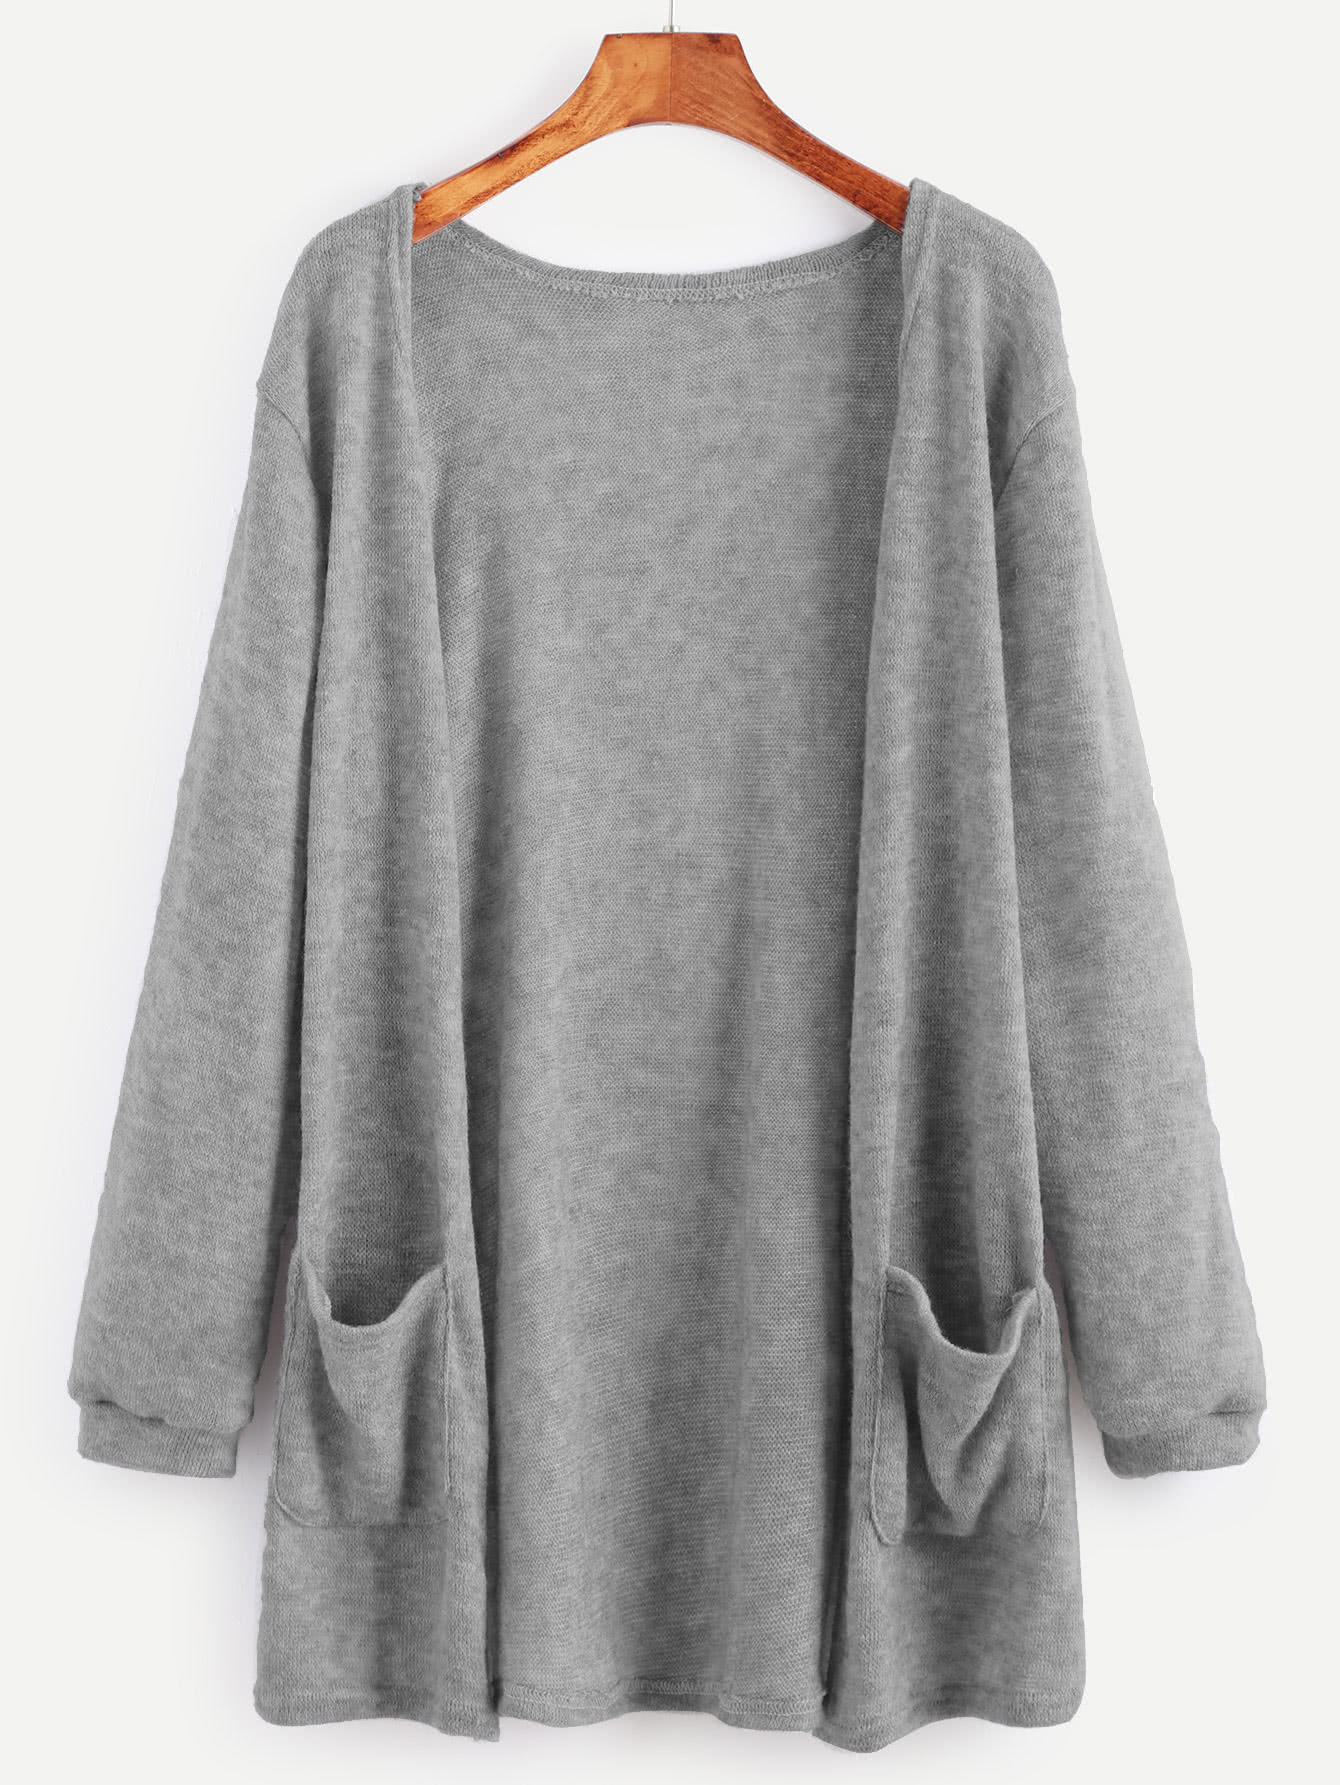 Open Front Cardigan With Pockets | Pockets online, Open front ...